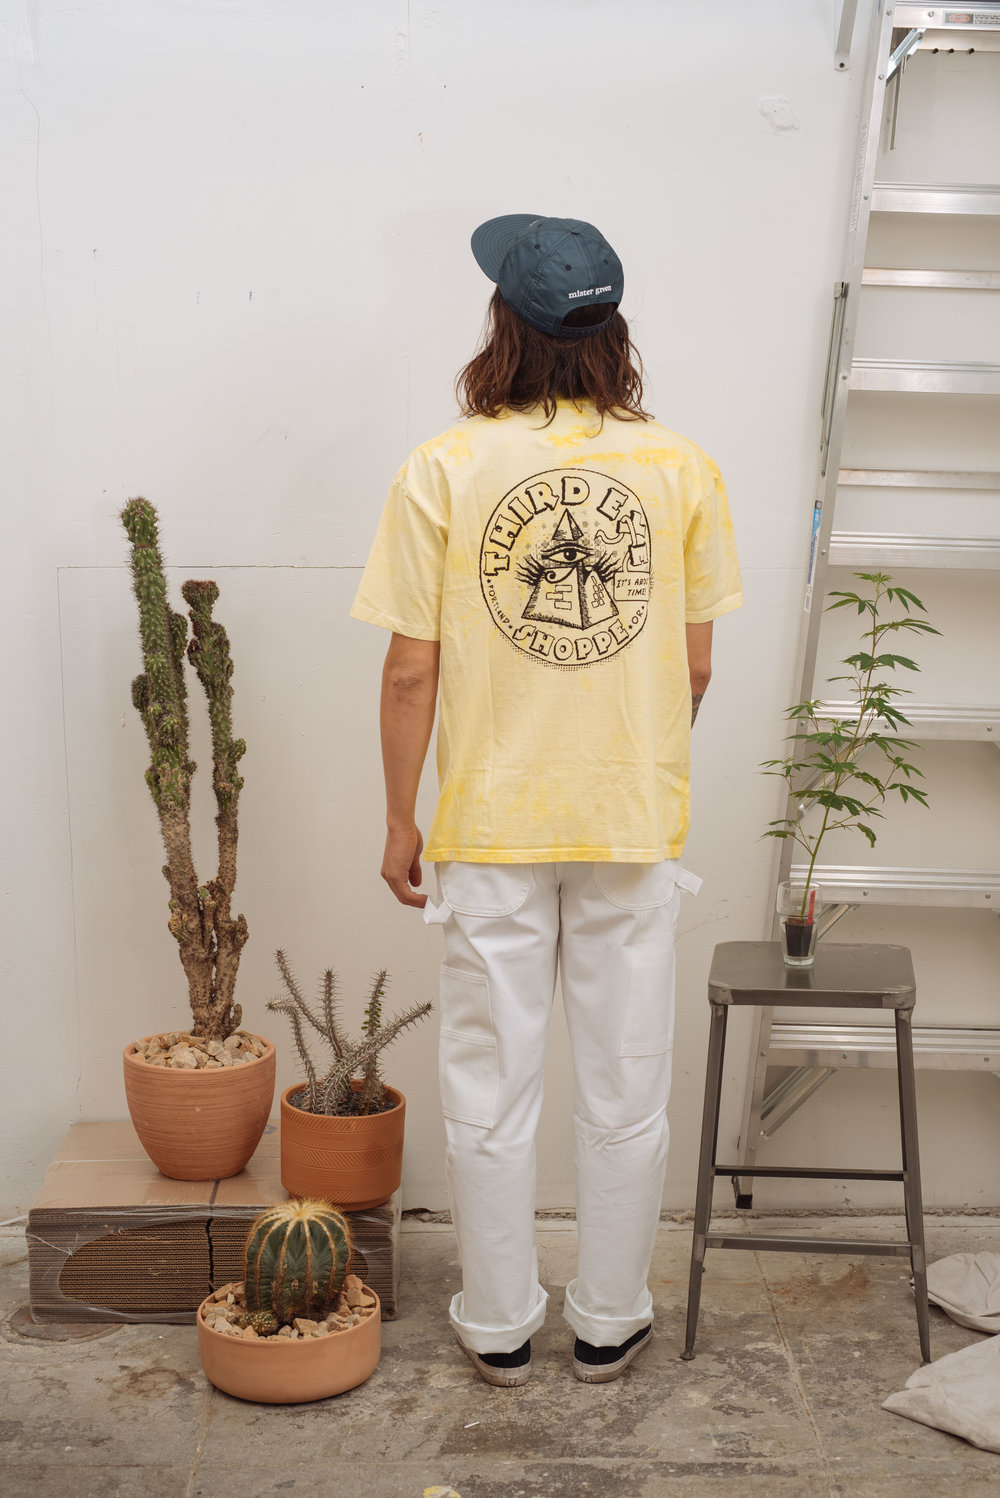 Satin Peace Logo Cap - Navy   3rd Eye Tee - Yellow Tie Dye   Green Dickies - White